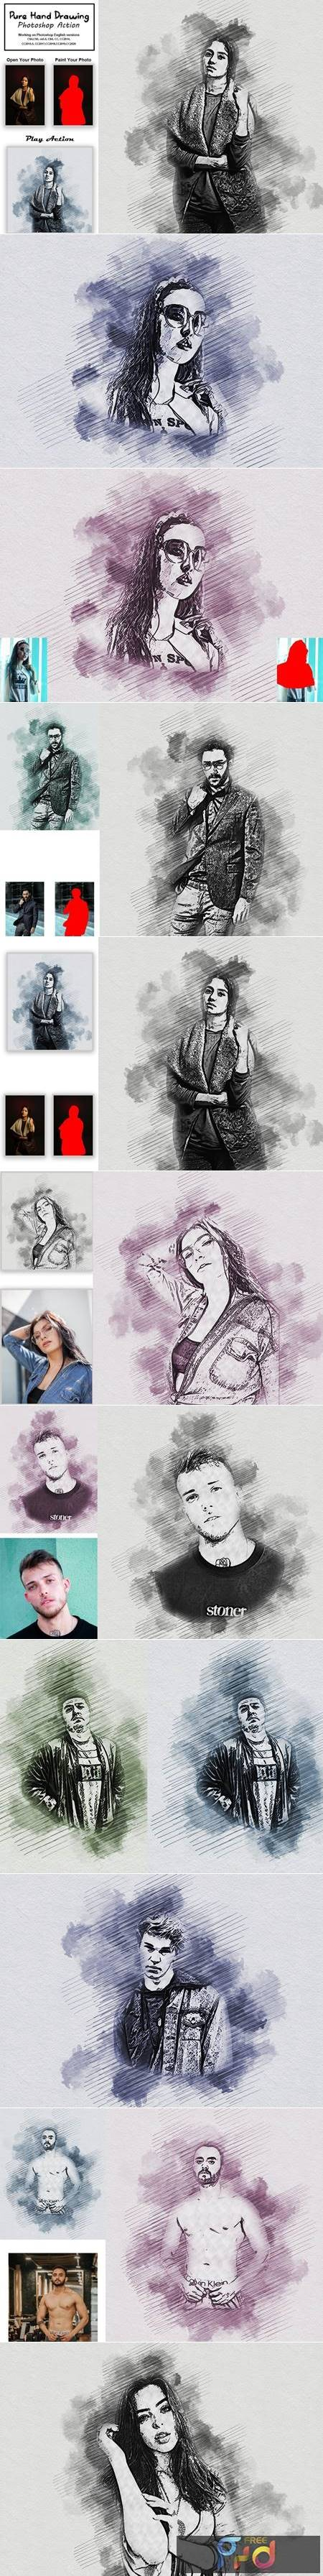 Pure Hand Drawing Photoshop Action 5354336 1